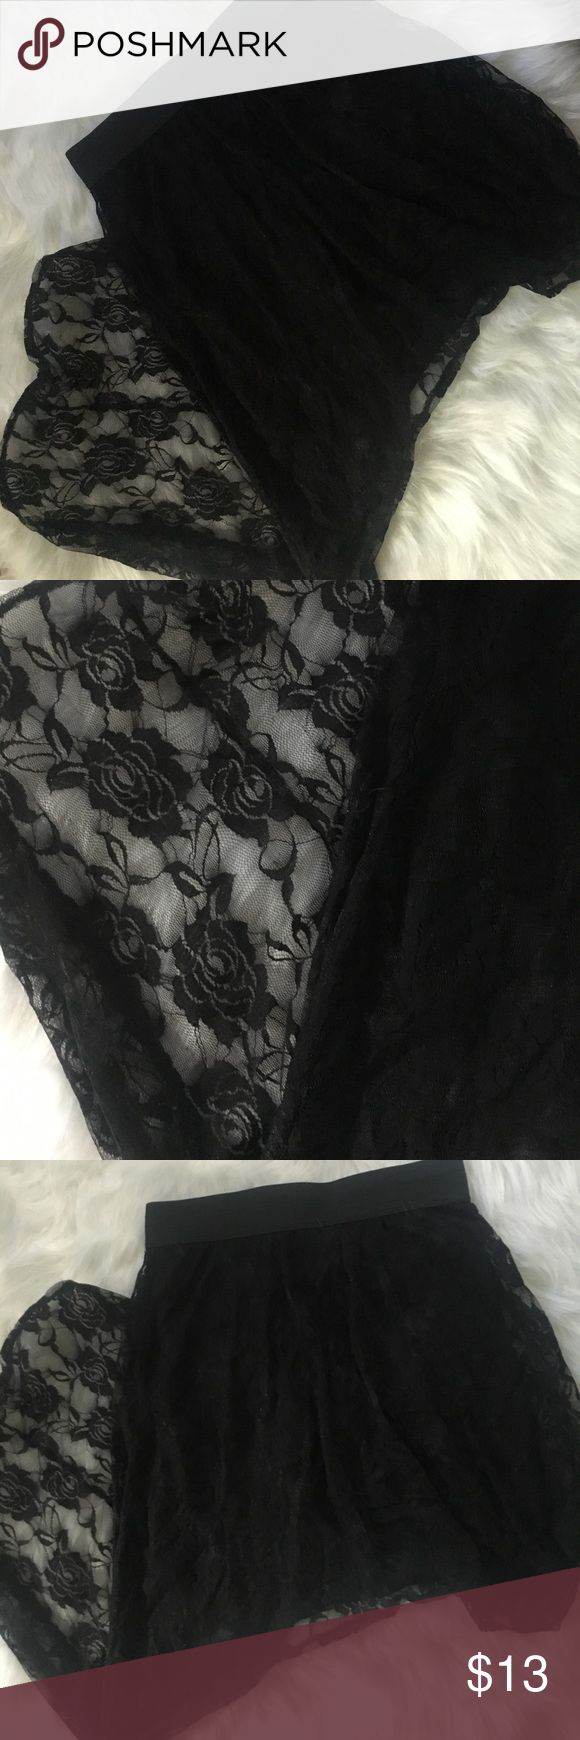 Brand new hi low skirt Brand new hi low lace skirt strechy PacSun Skirts High Low